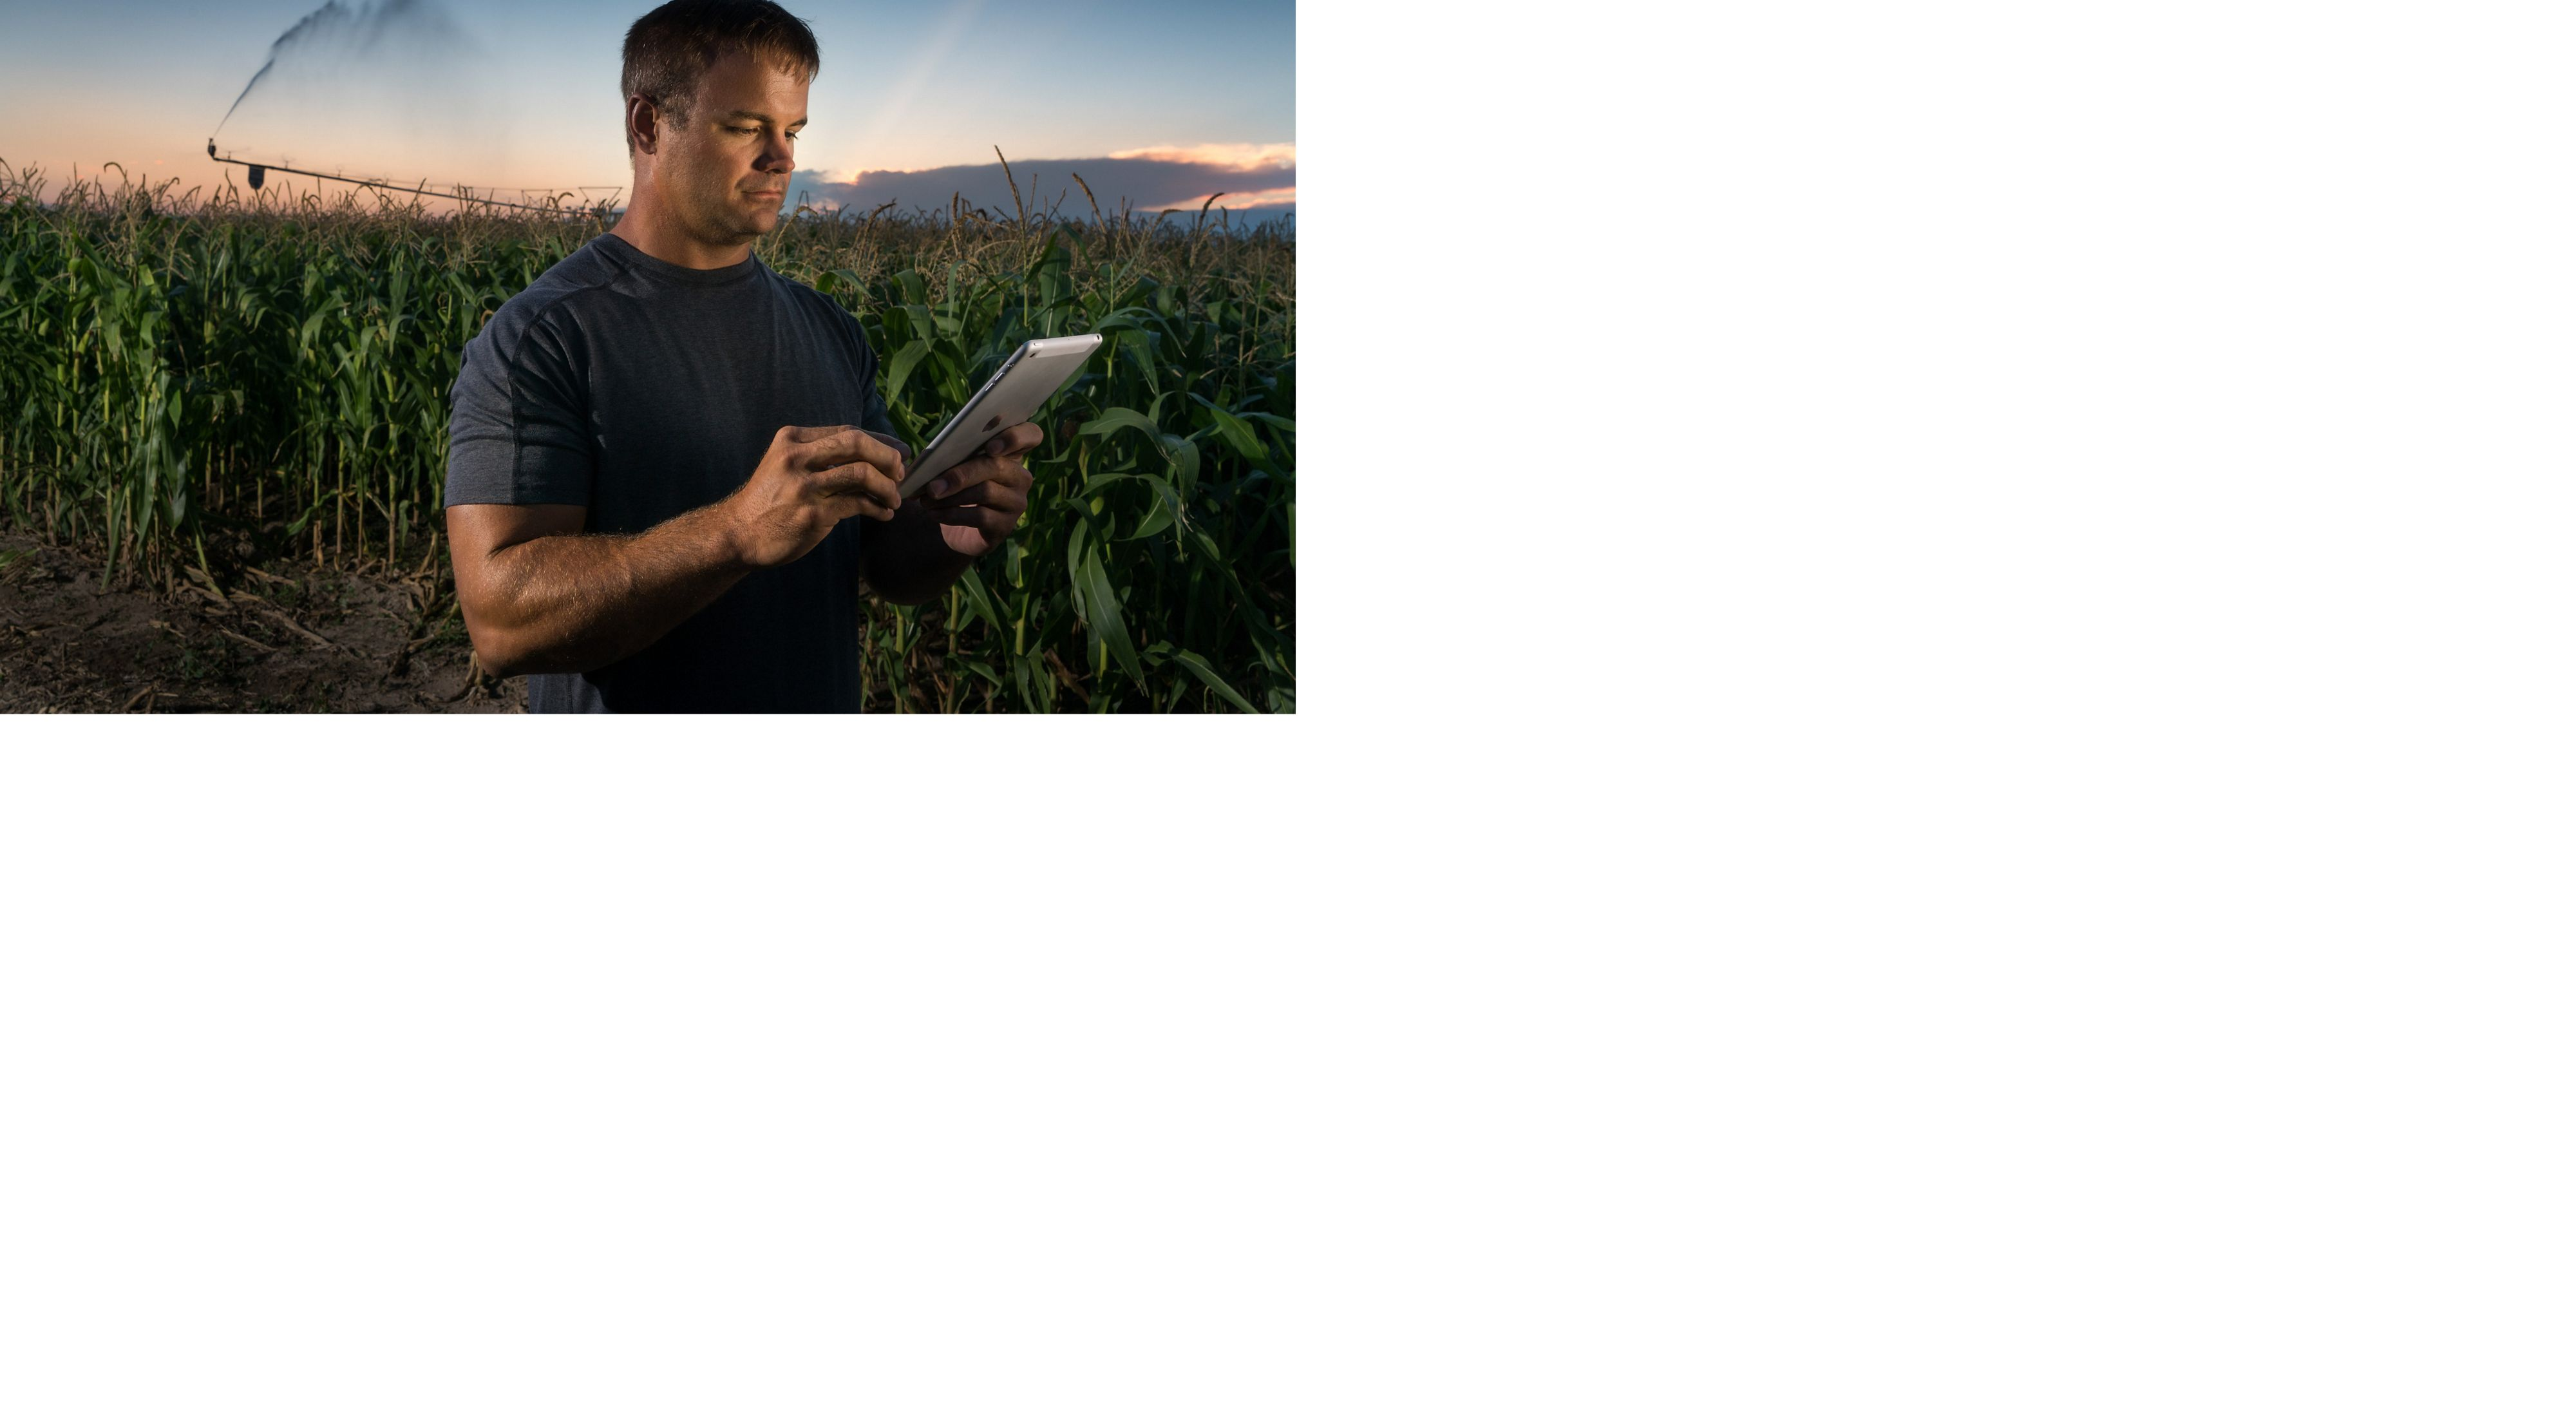 GPS irrigation mapping. Mike Svboda, of Svboda farms in Nebraska, controls his irrigation pivot from the GPS software on his iPad.